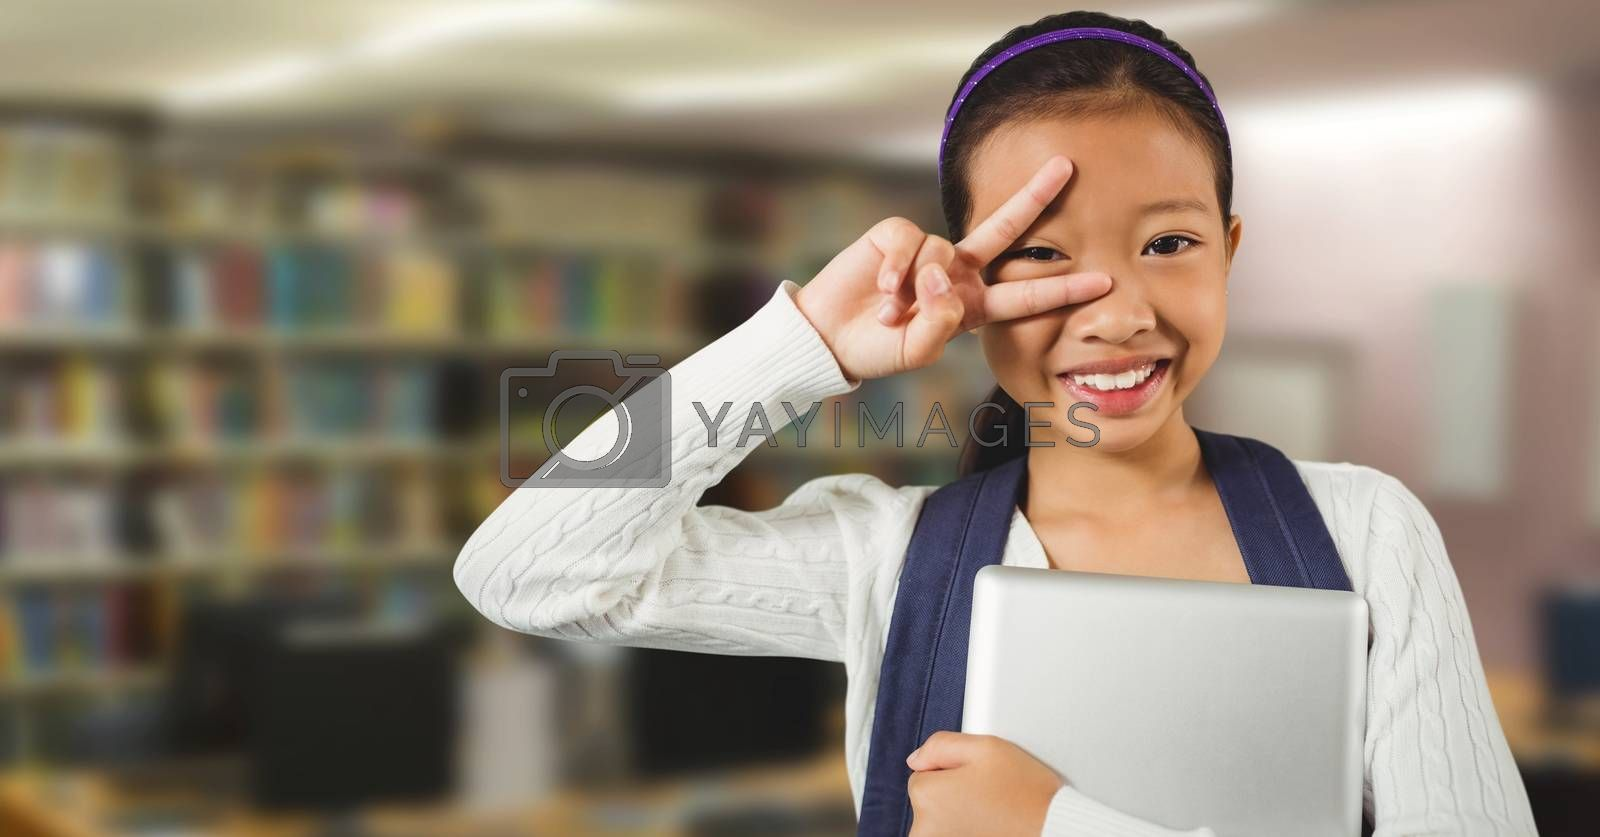 Girl in education library by Wavebreakmedia